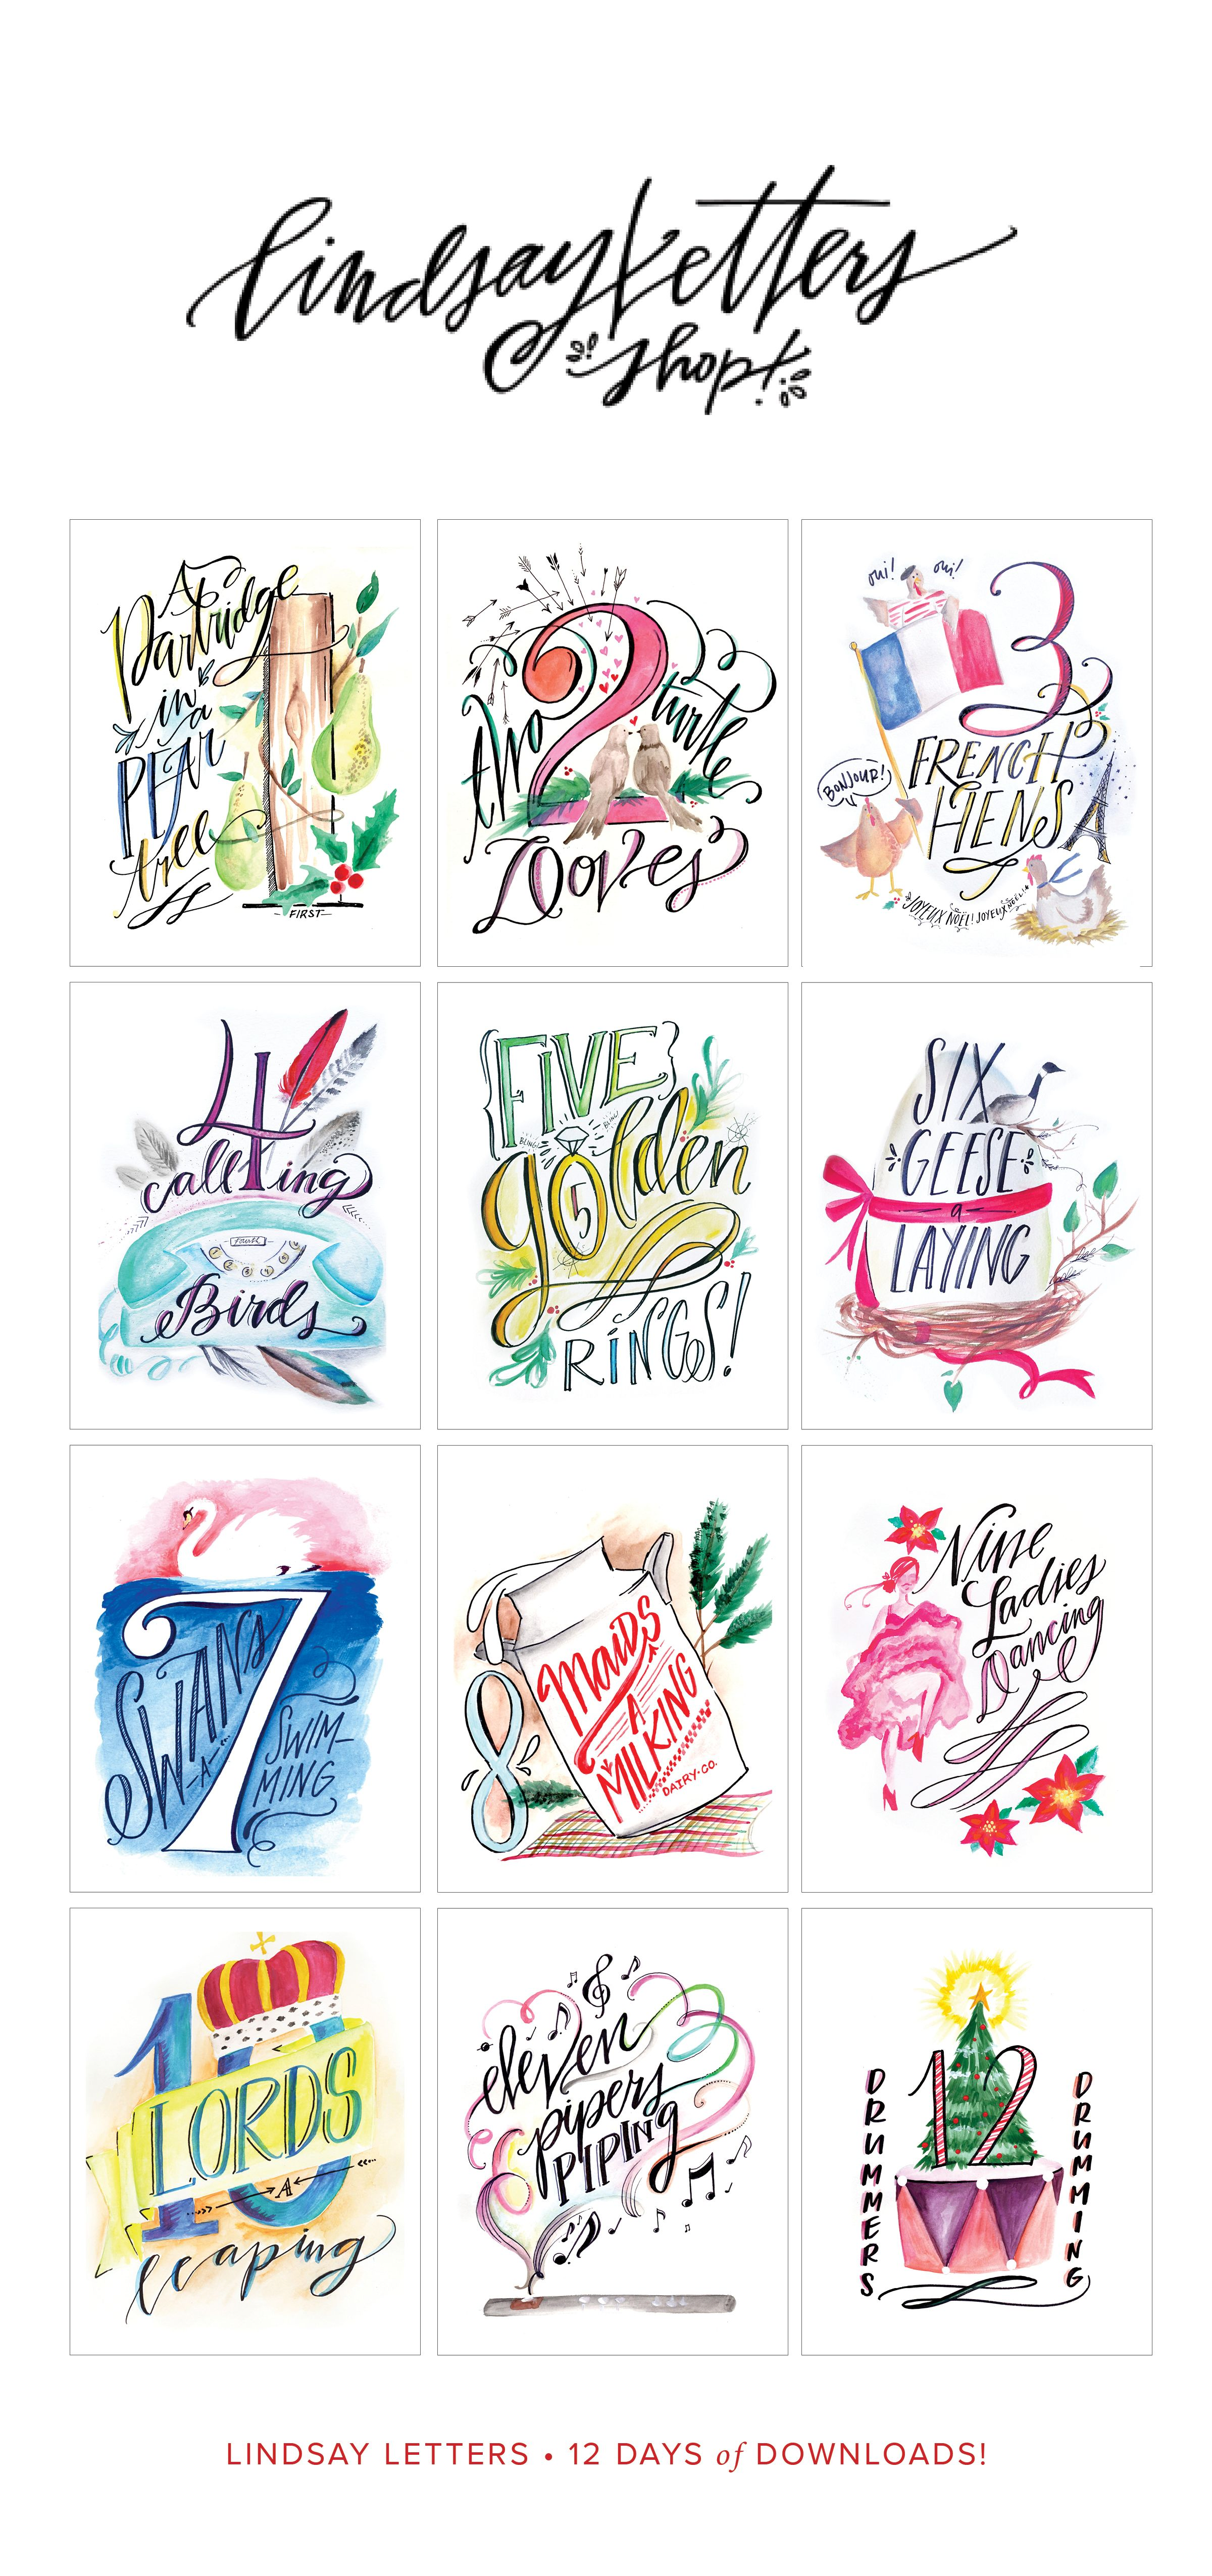 Twelve 12 Days of Christmas Images Printable Free Download | Crafts ...